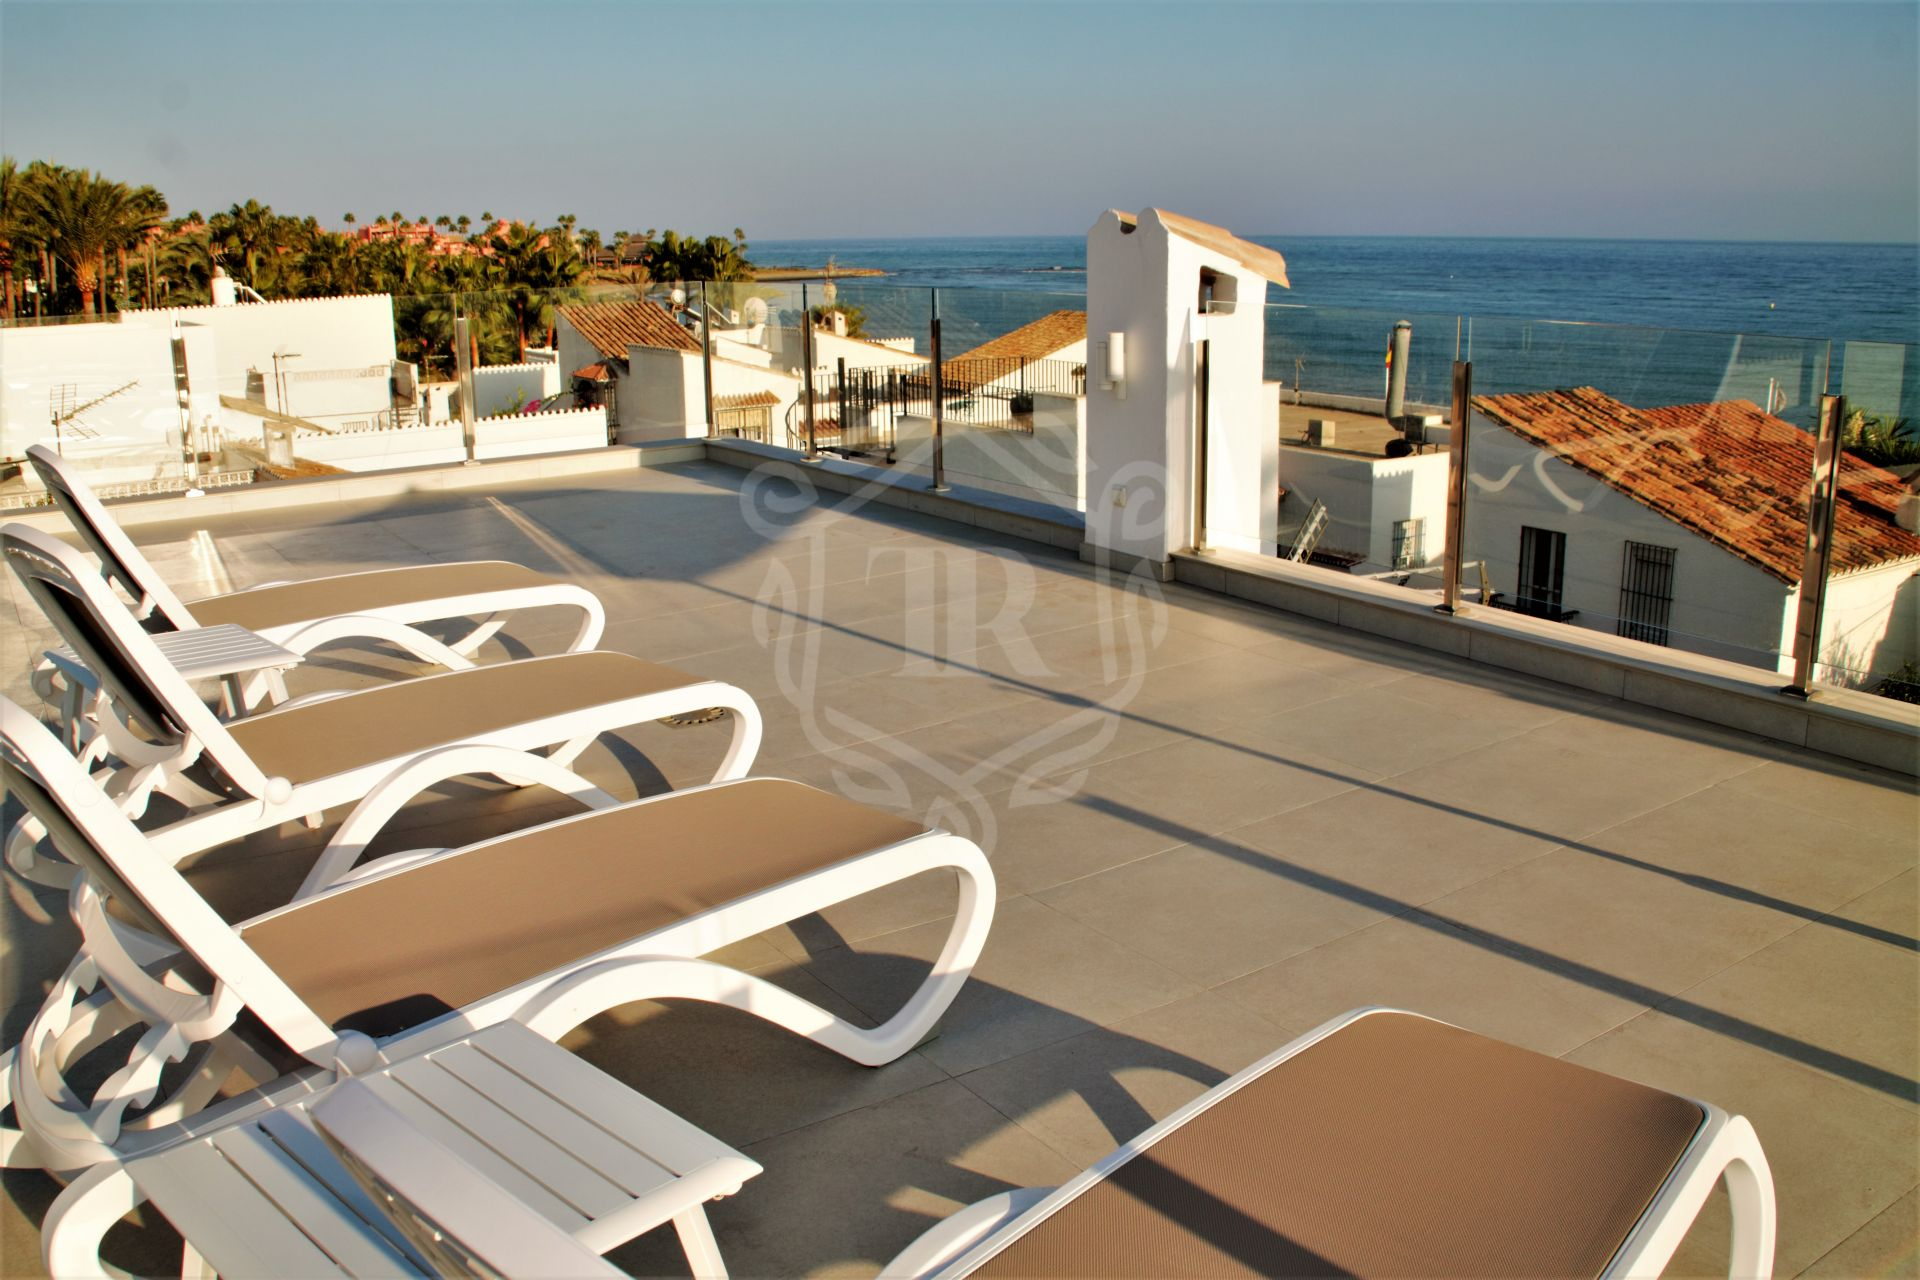 Beachfront recently renovated penthouse in El Pirata, New Golden Mile